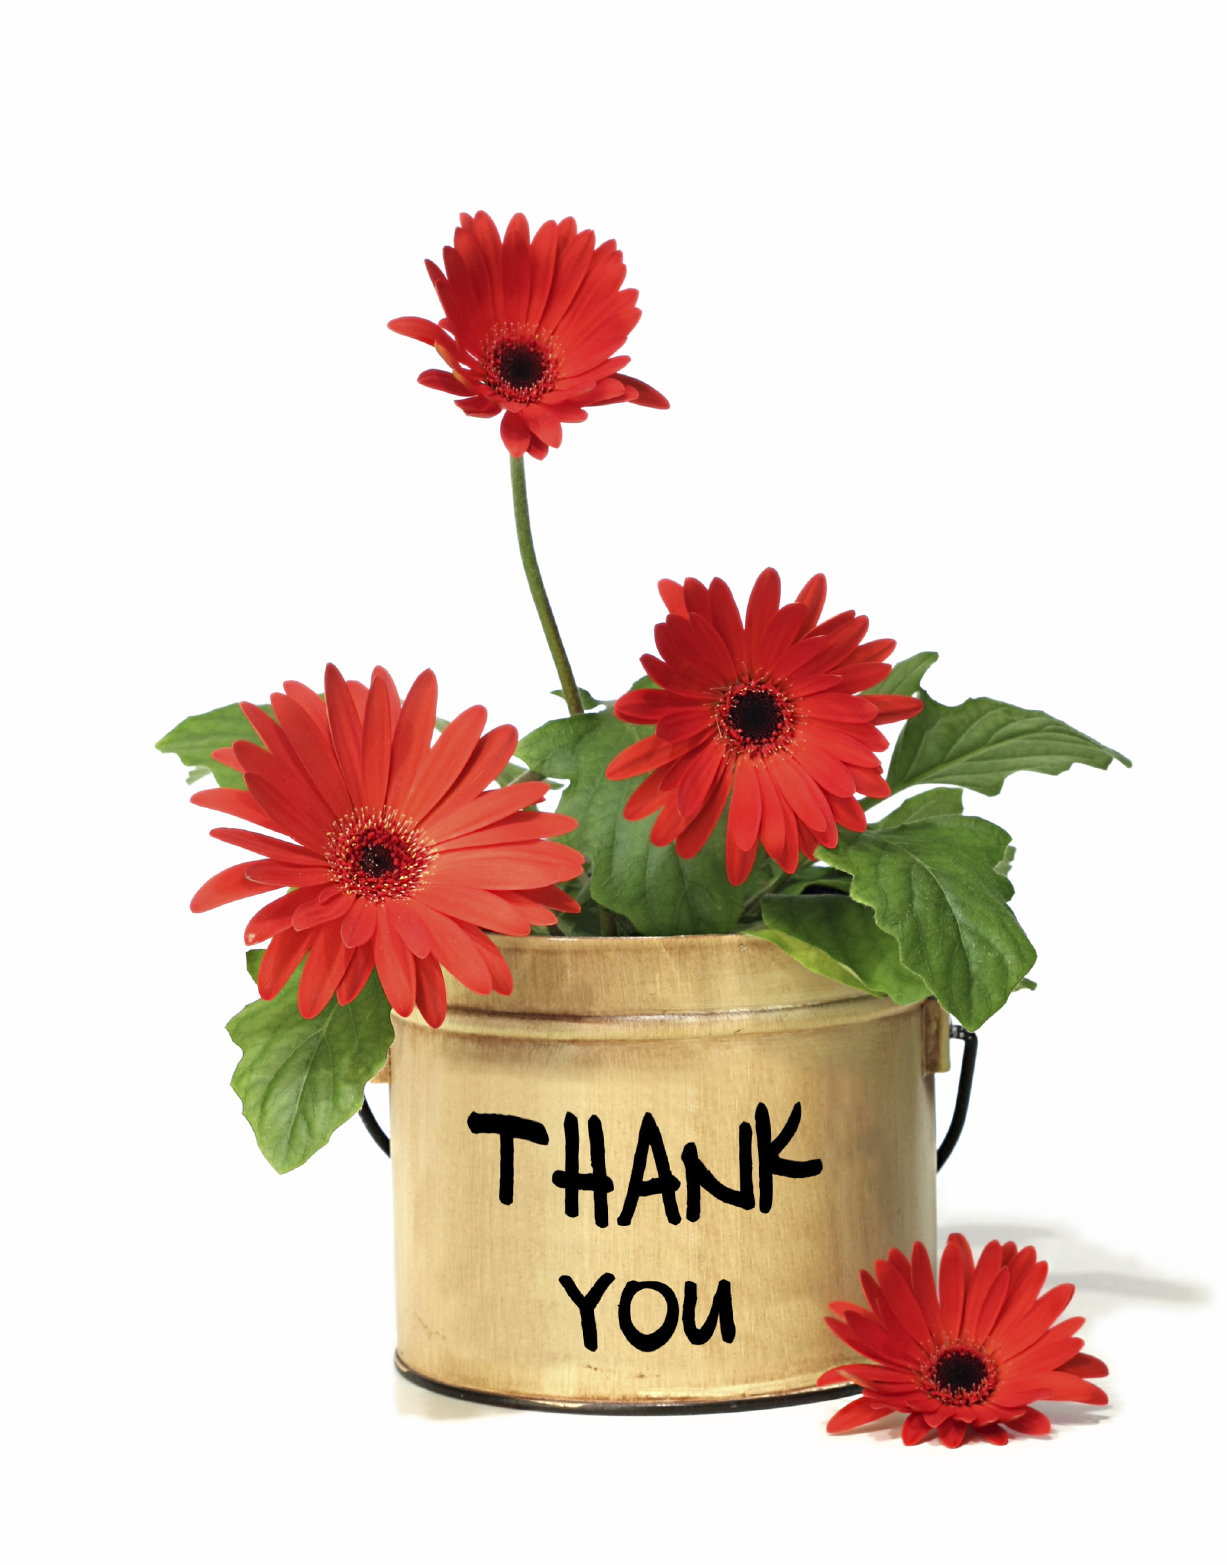 iStock_000006116537_Thank_You